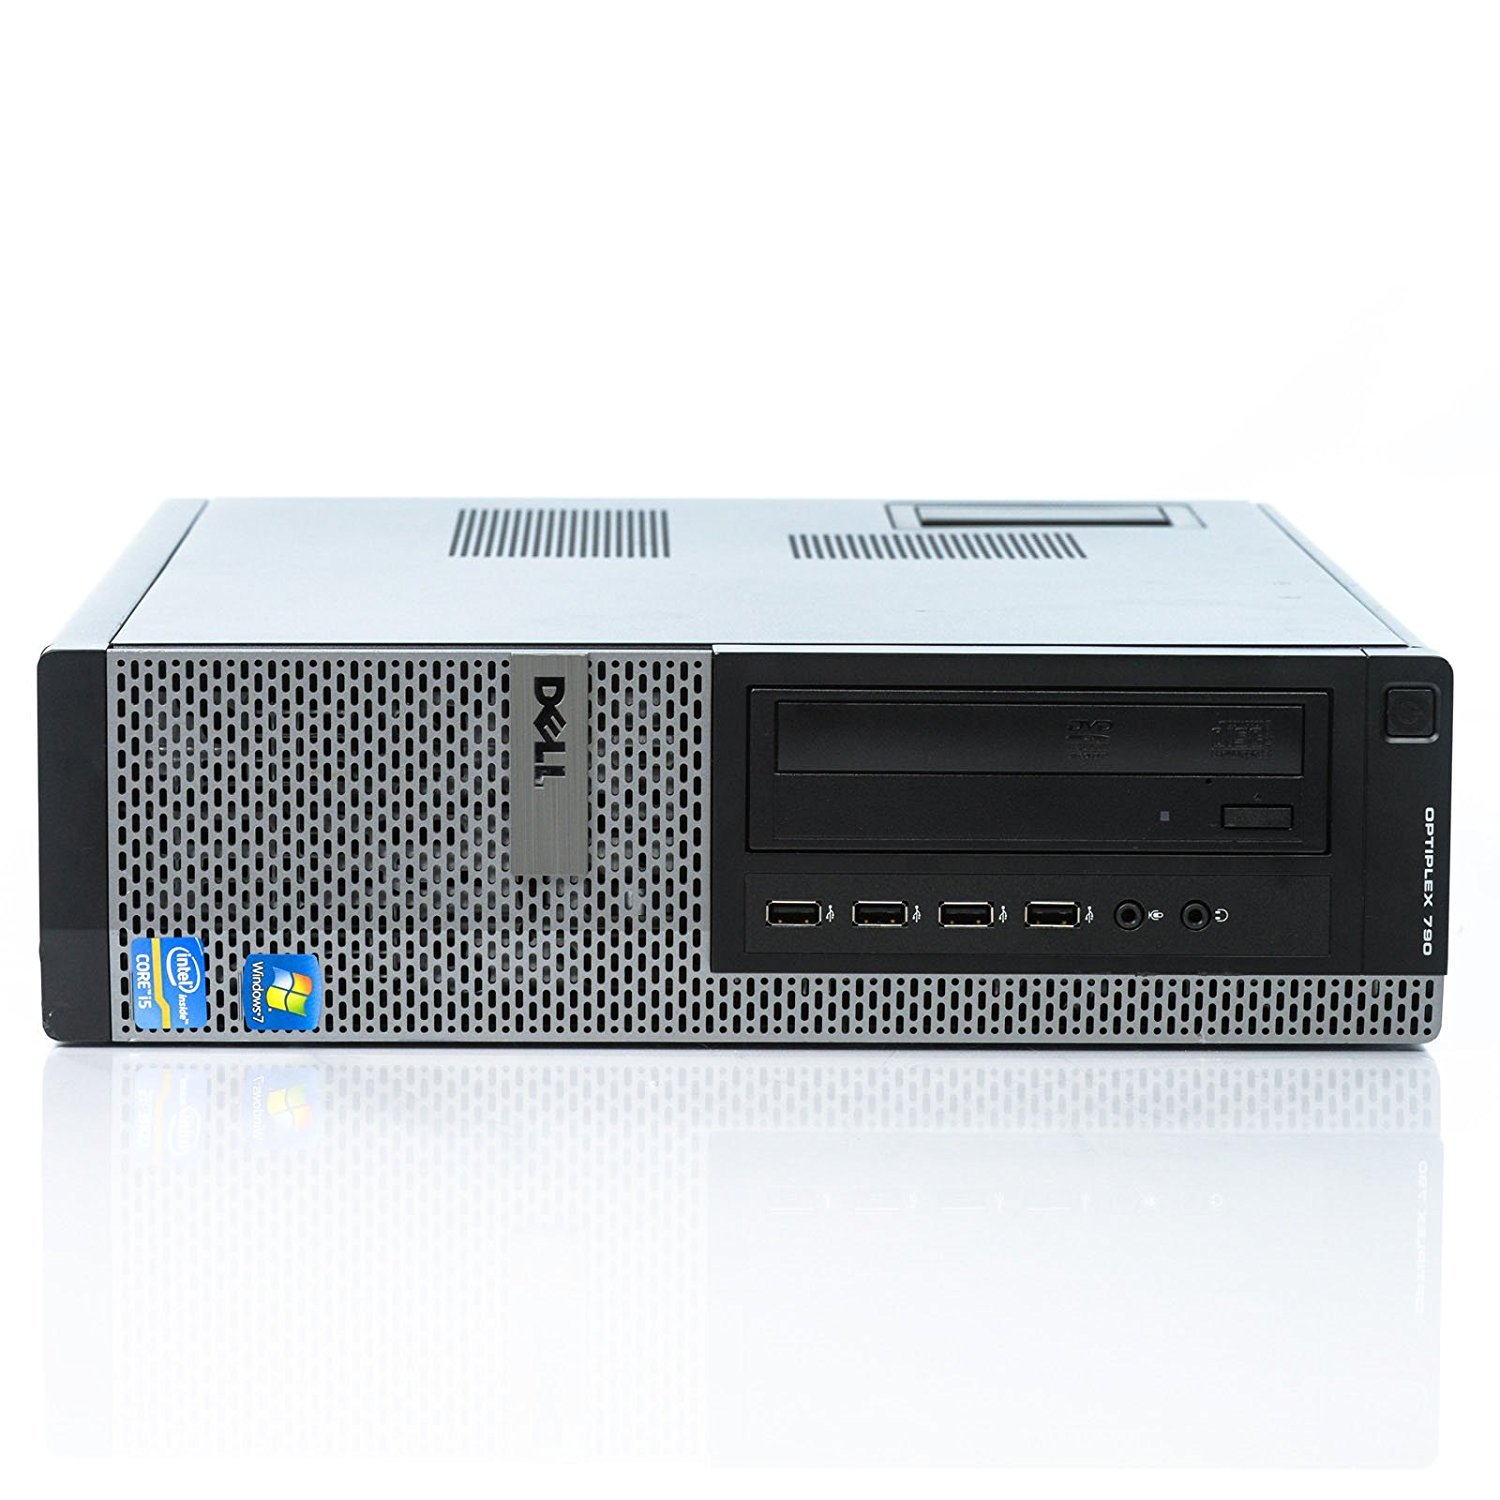 amazoncom dell optiplex 790 sff desktop computer intel core i5 i52400 310 ghz 4gb ram 500gb hdd dvdrom windows 10 32bit